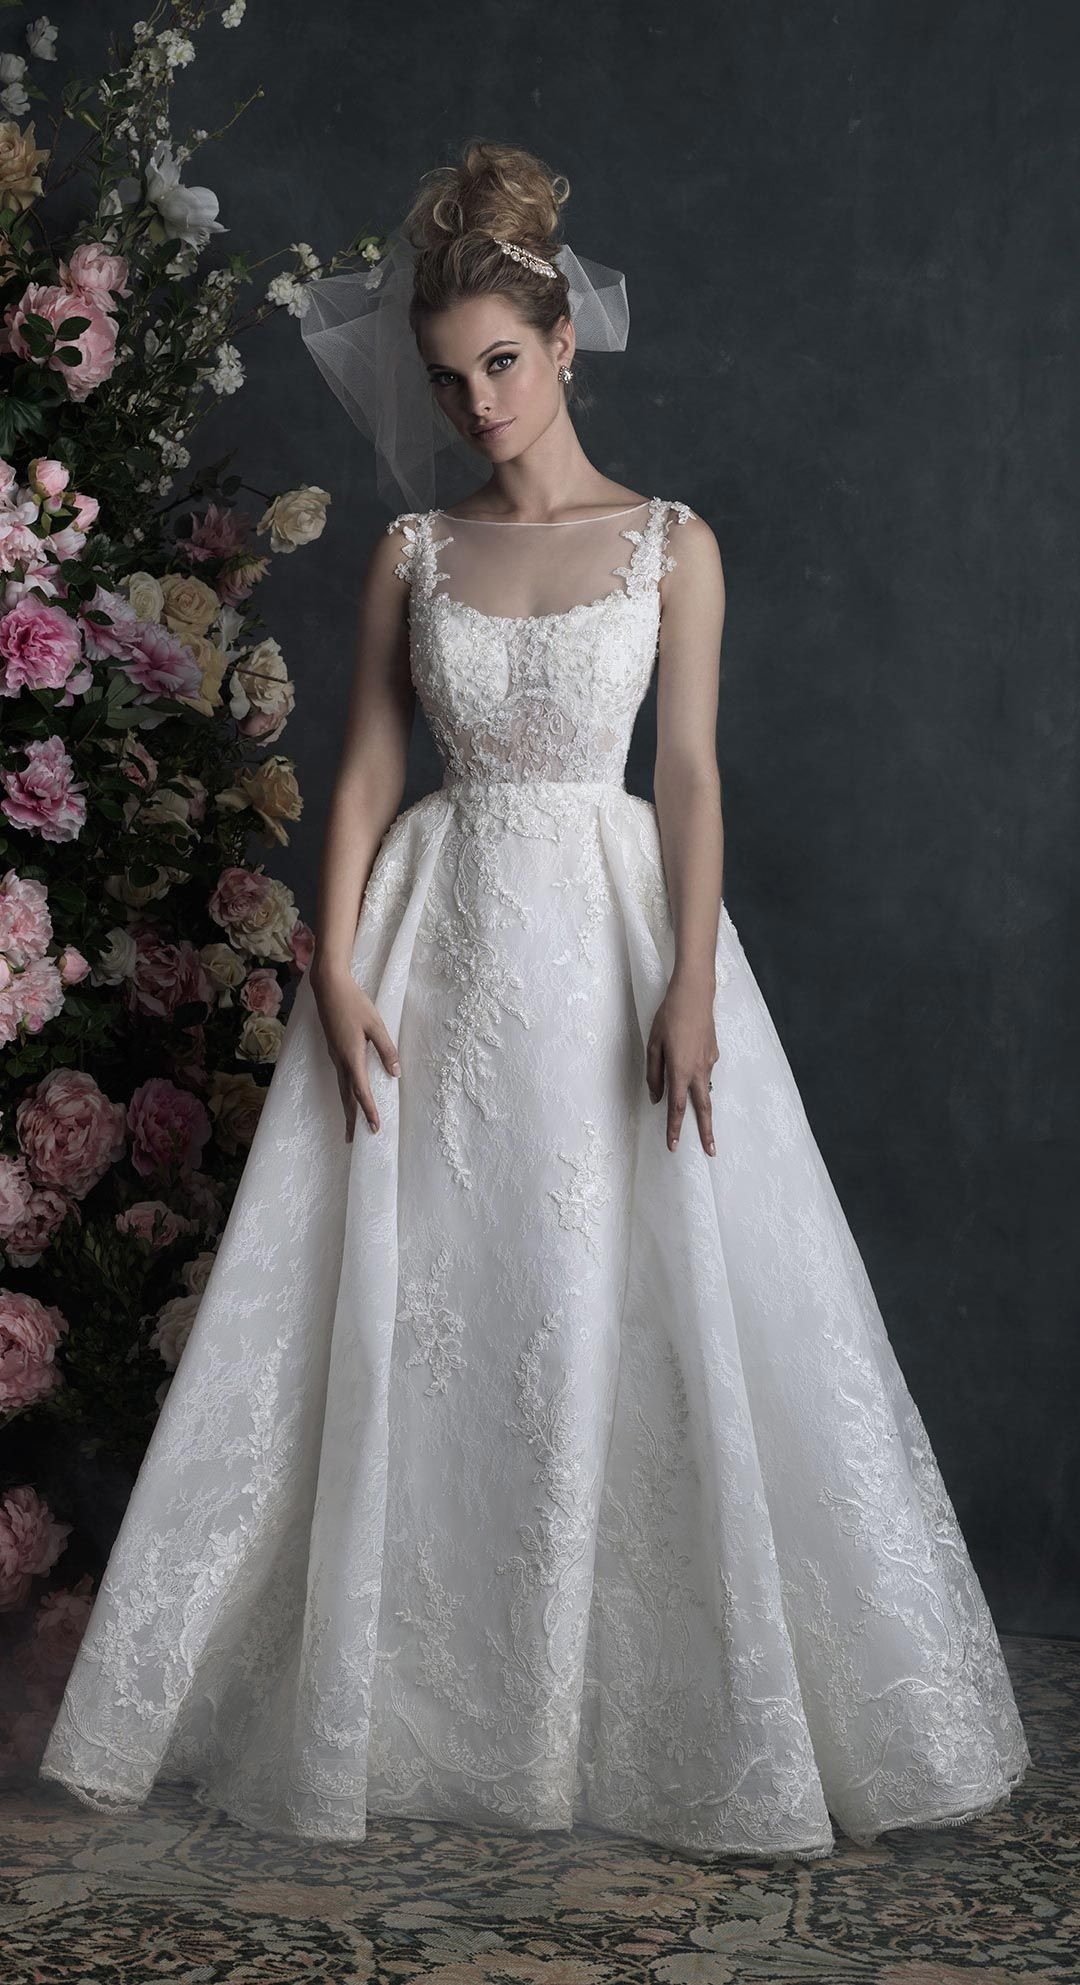 Stunning allure couture c by allurebridals opaque and